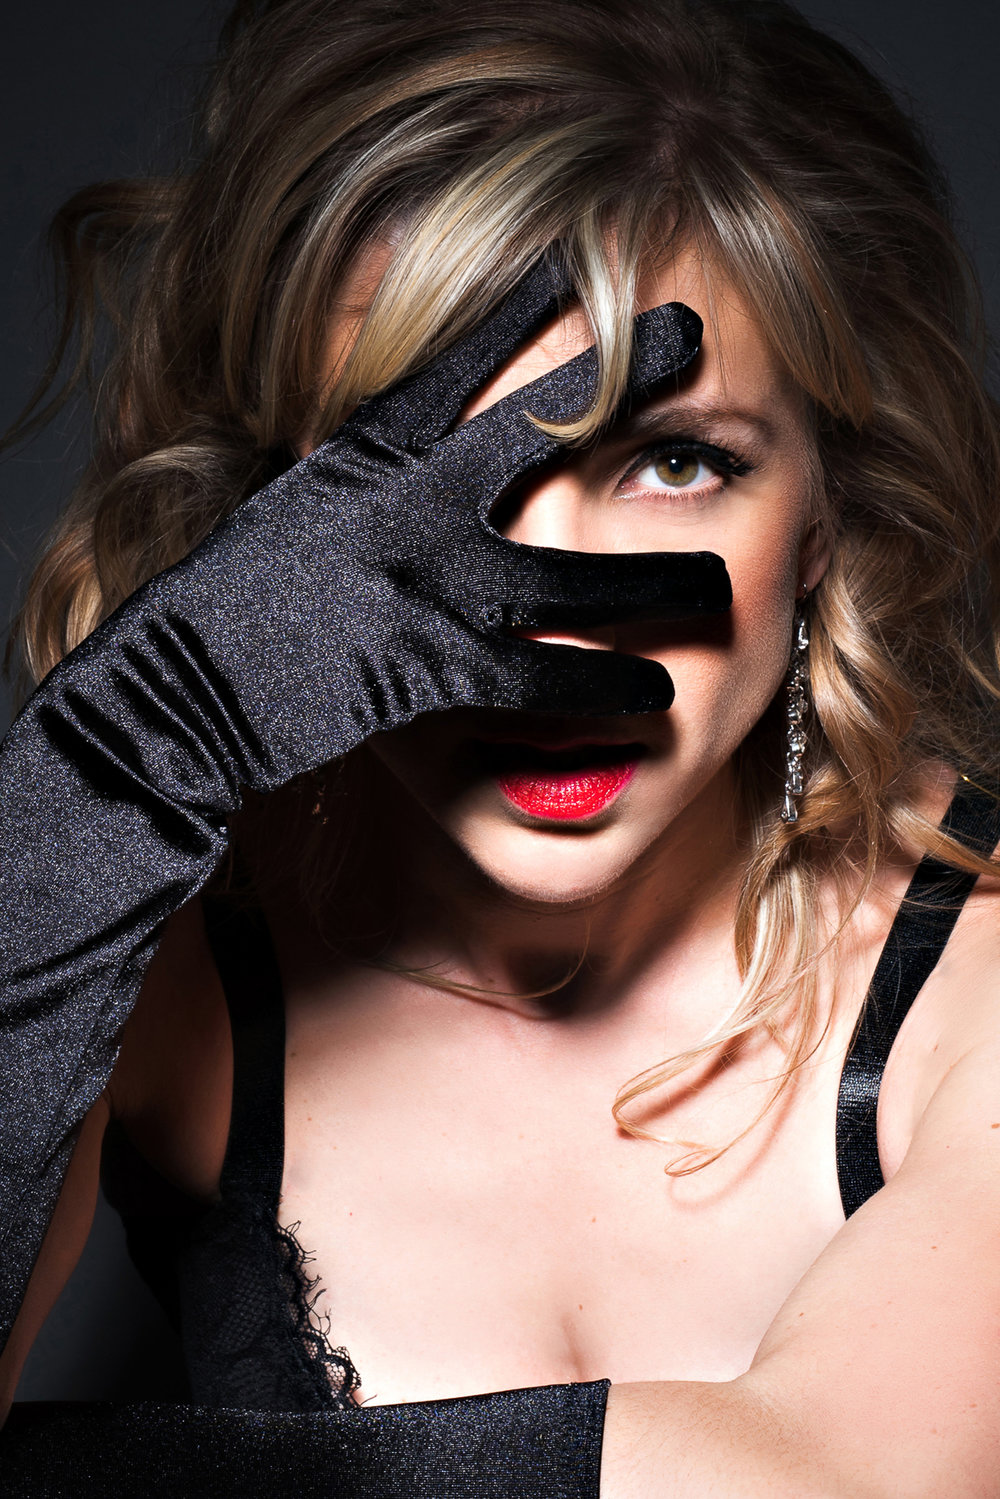 Denver boudoir photo of Blonde woman covering face with lack satin gloved hand